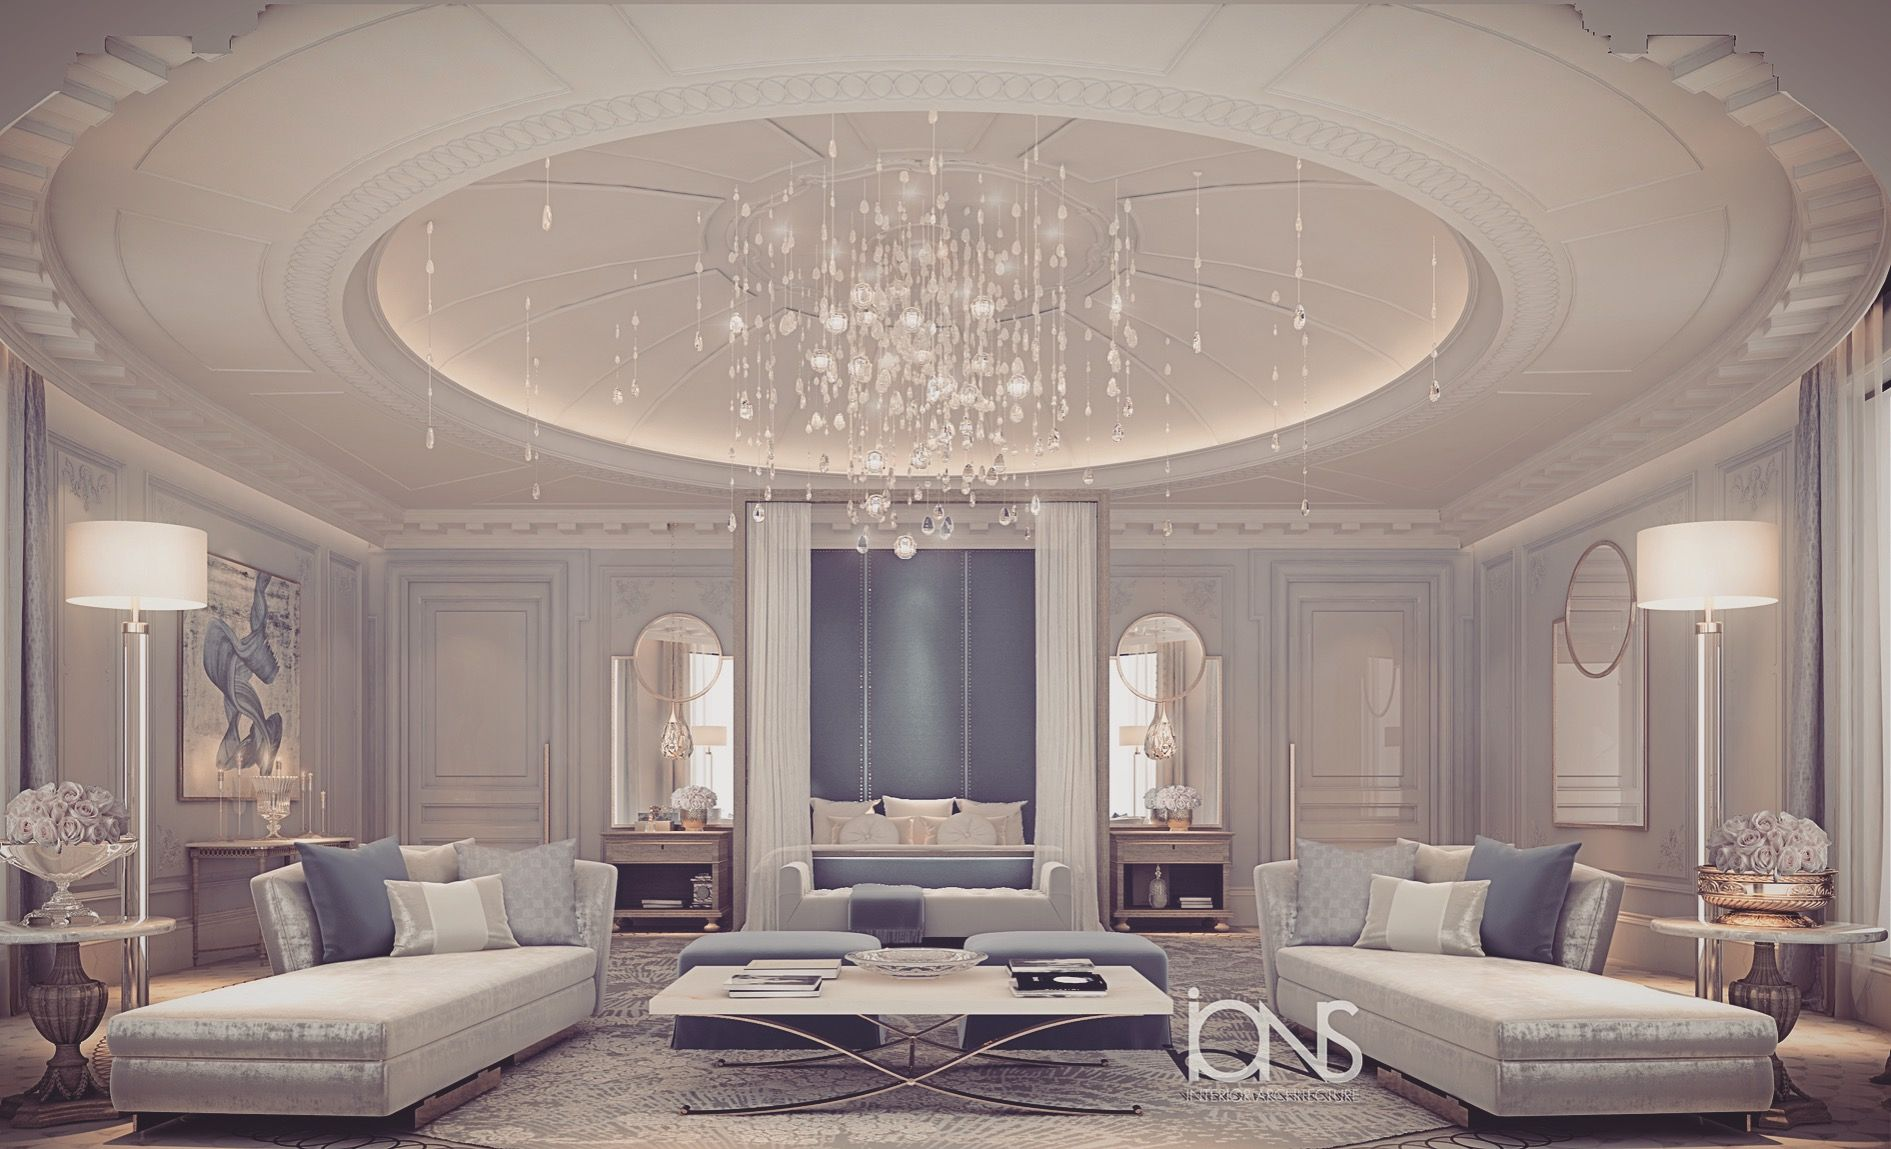 Ions Interior Design Dubai bedroom design by ions design . dubai (görüntüler ile) | ev